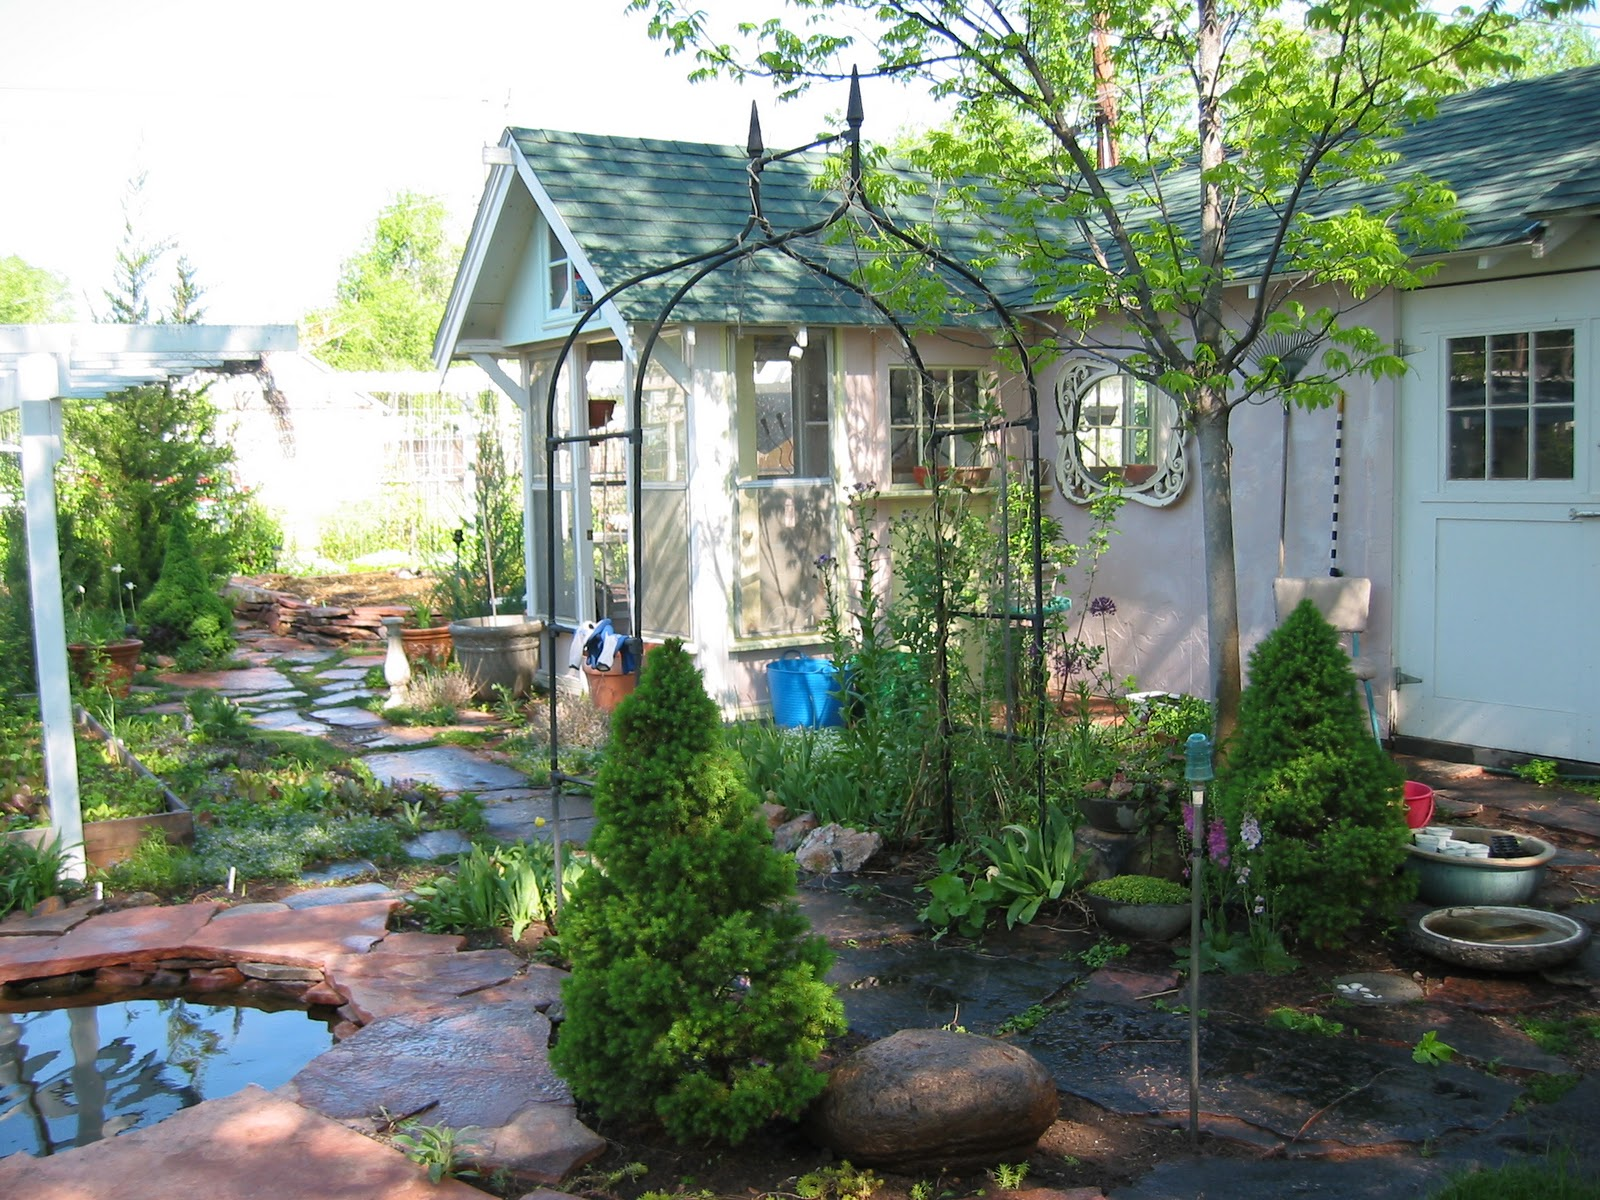 Little garden house - My Pathways Are Made From The Local Pink Limestone So I Painted The Walls Pinkish Notice The Mirrow We Salvaged The Wooden Tower In The Front Of The